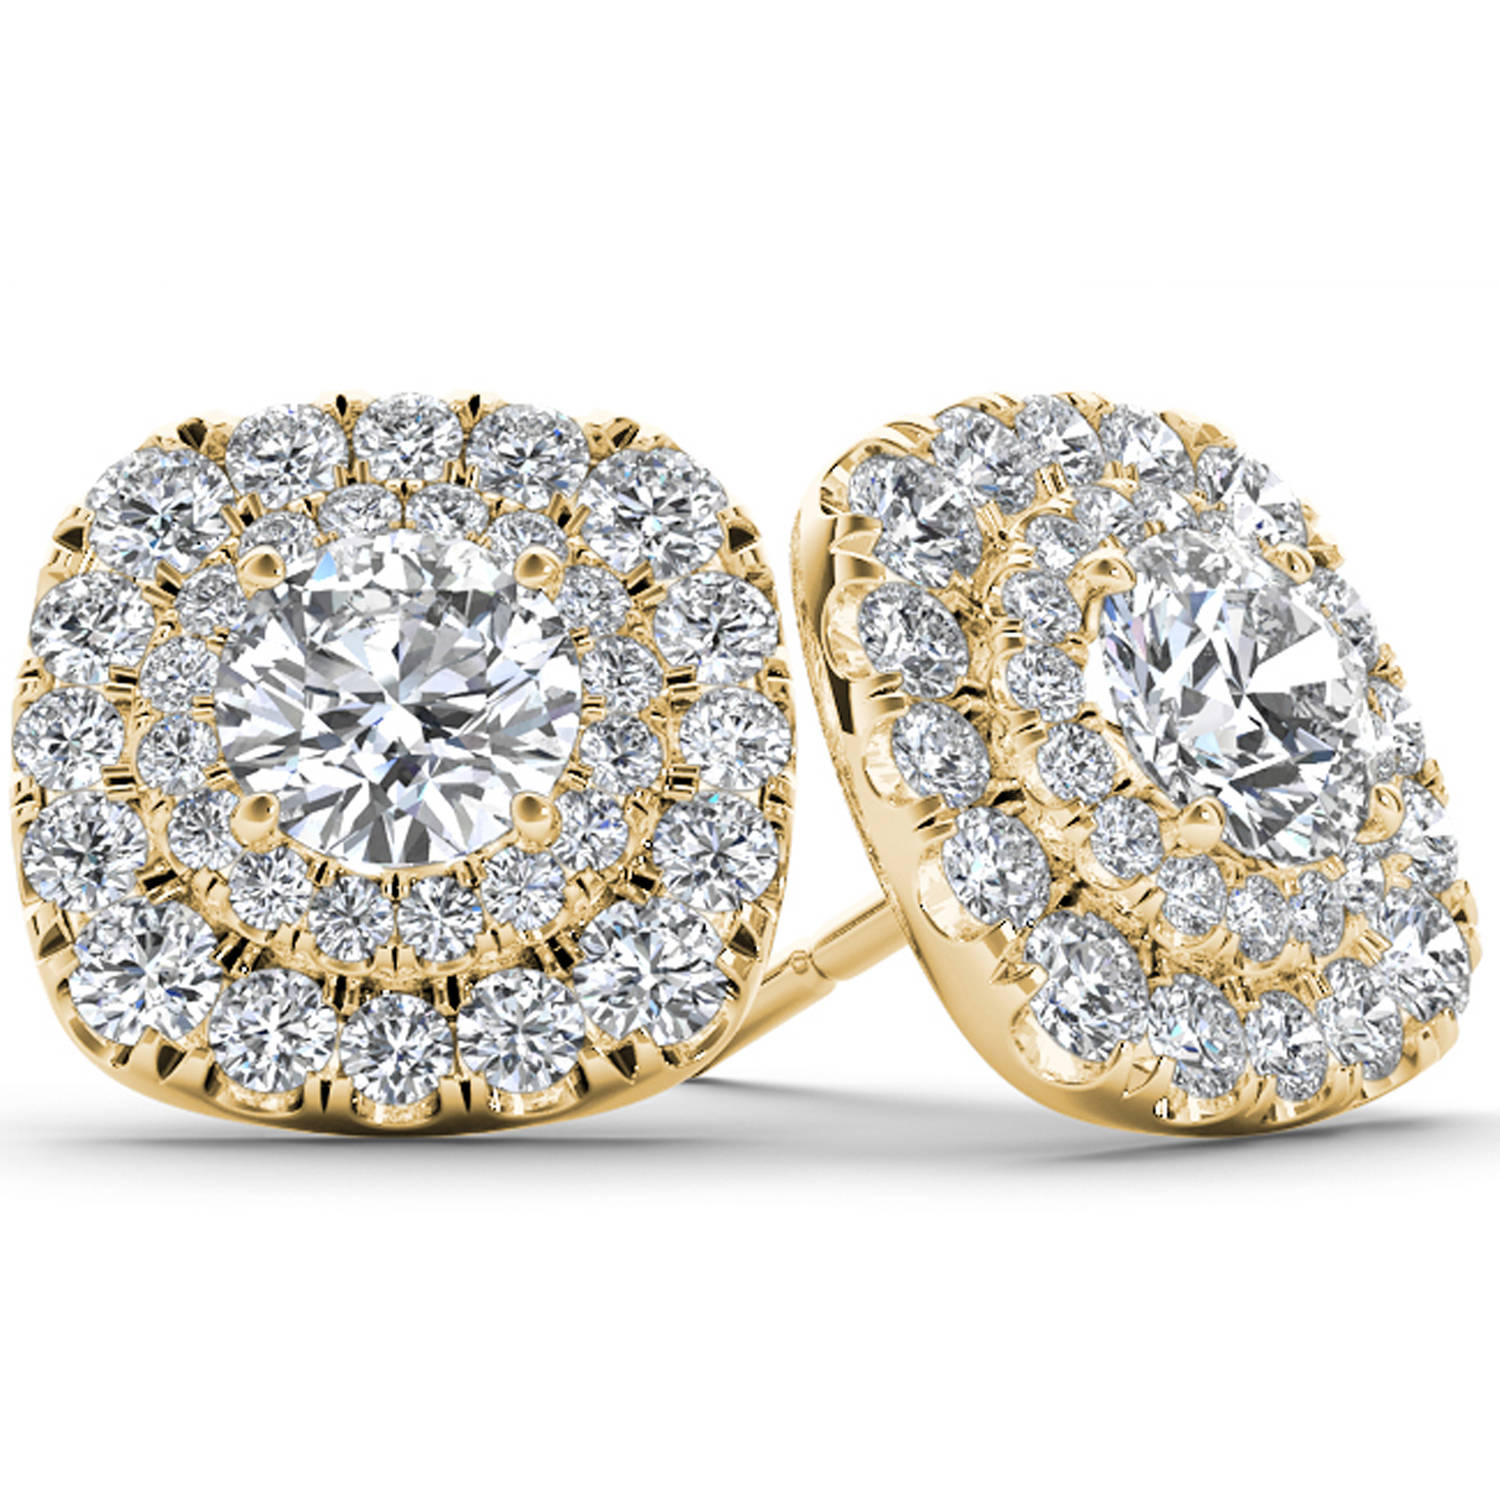 Imperial 1 Carat T.W. Diamond 10kt Yellow Gold Double-Halo Stud Earrings